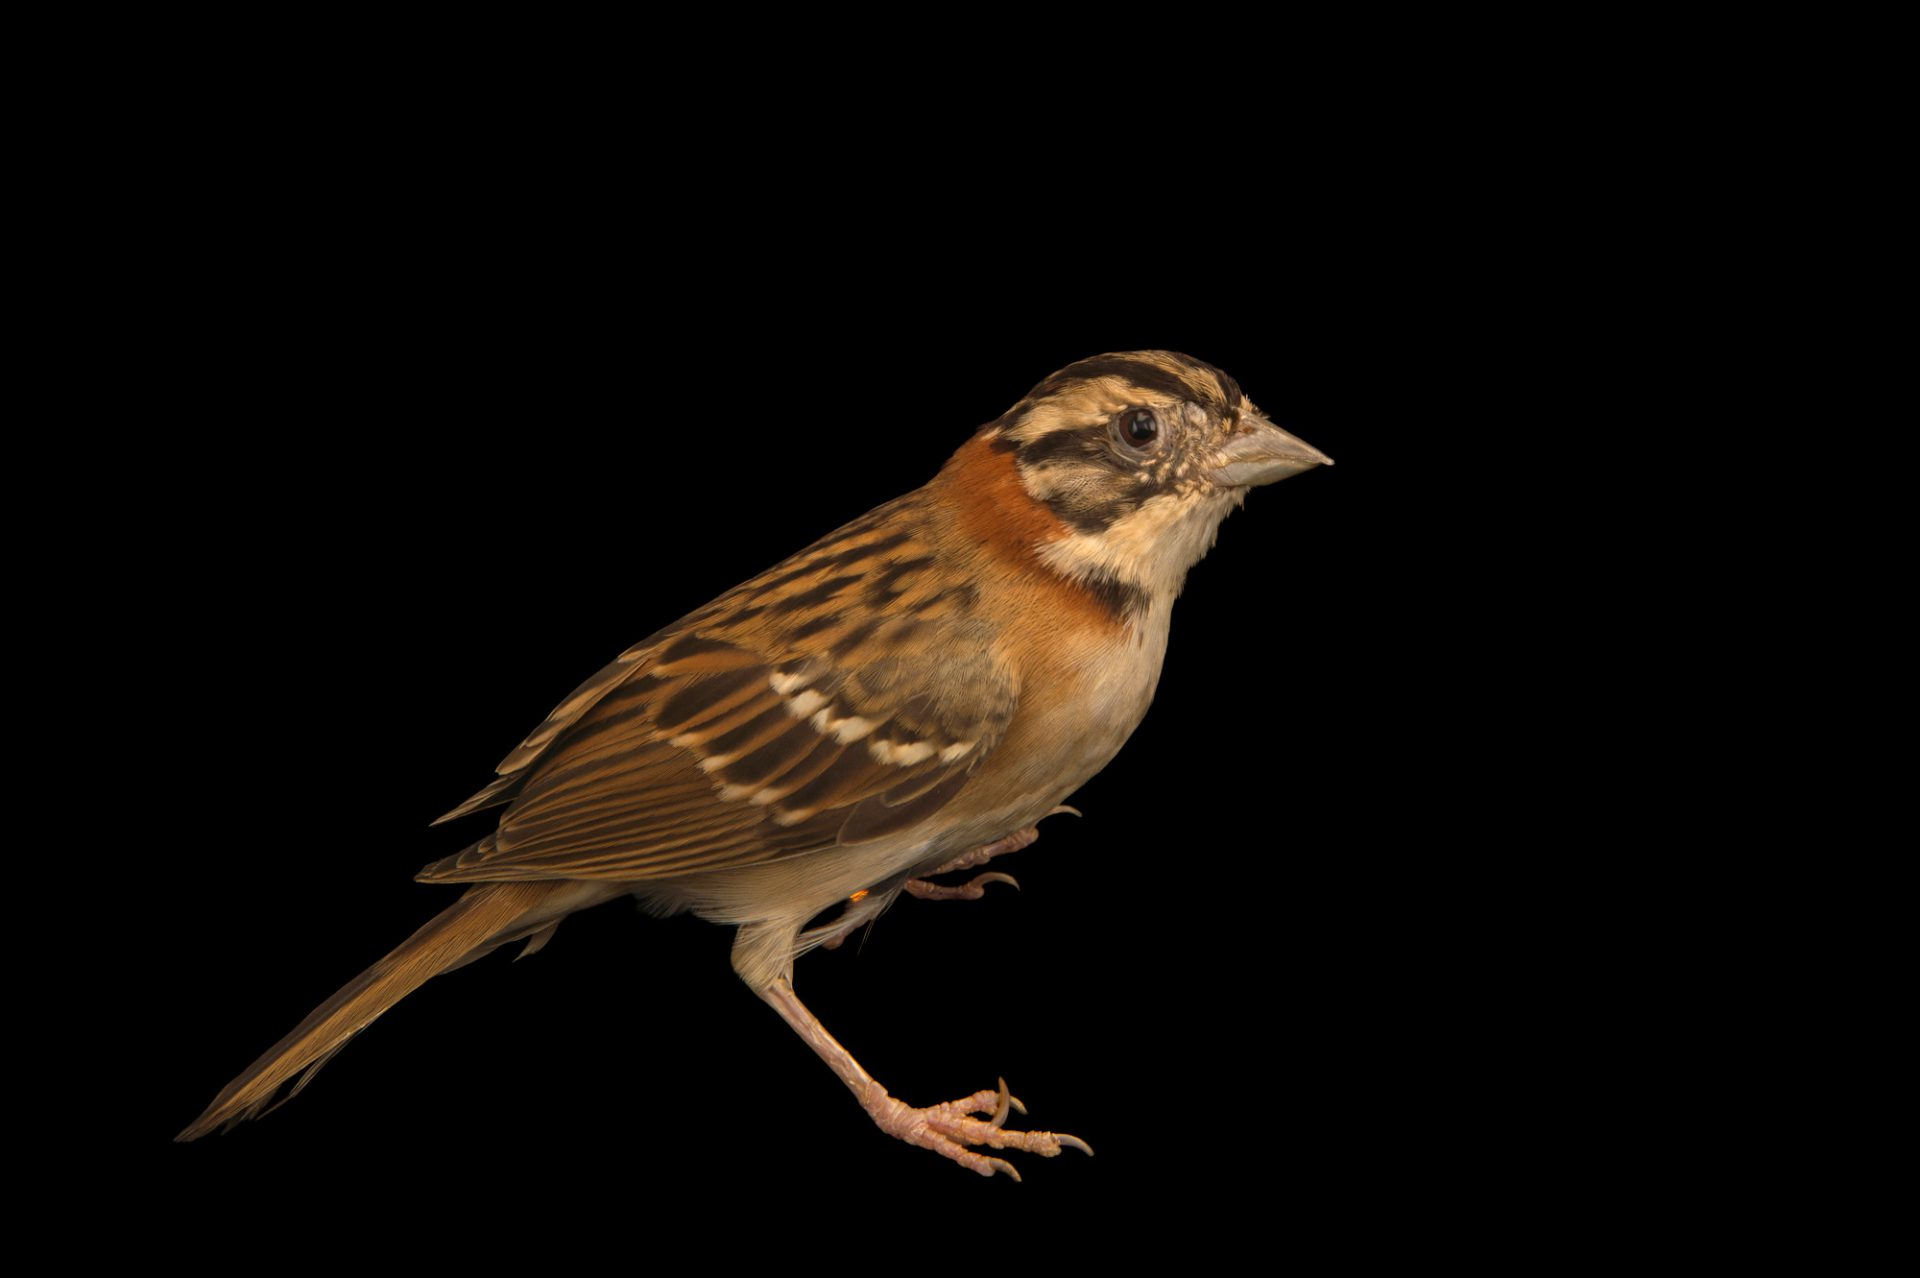 Photo: Rufous-collared sparrow (Zonotrichia capensis) at the Plzen Zoo in the Czech Republic.